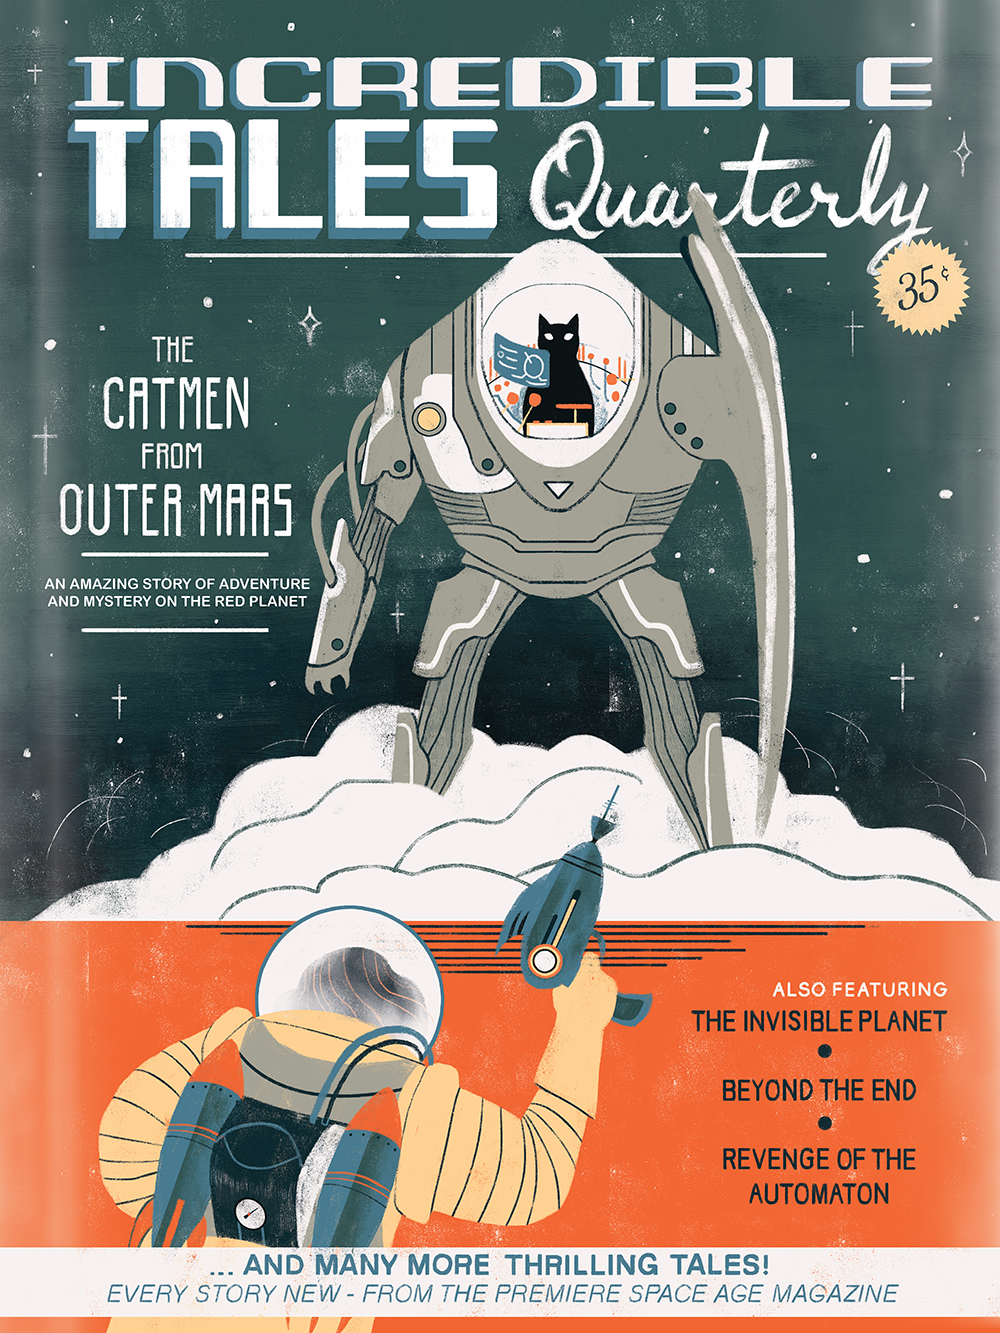 """Incredible Tales Quarterly"" by Sander B."